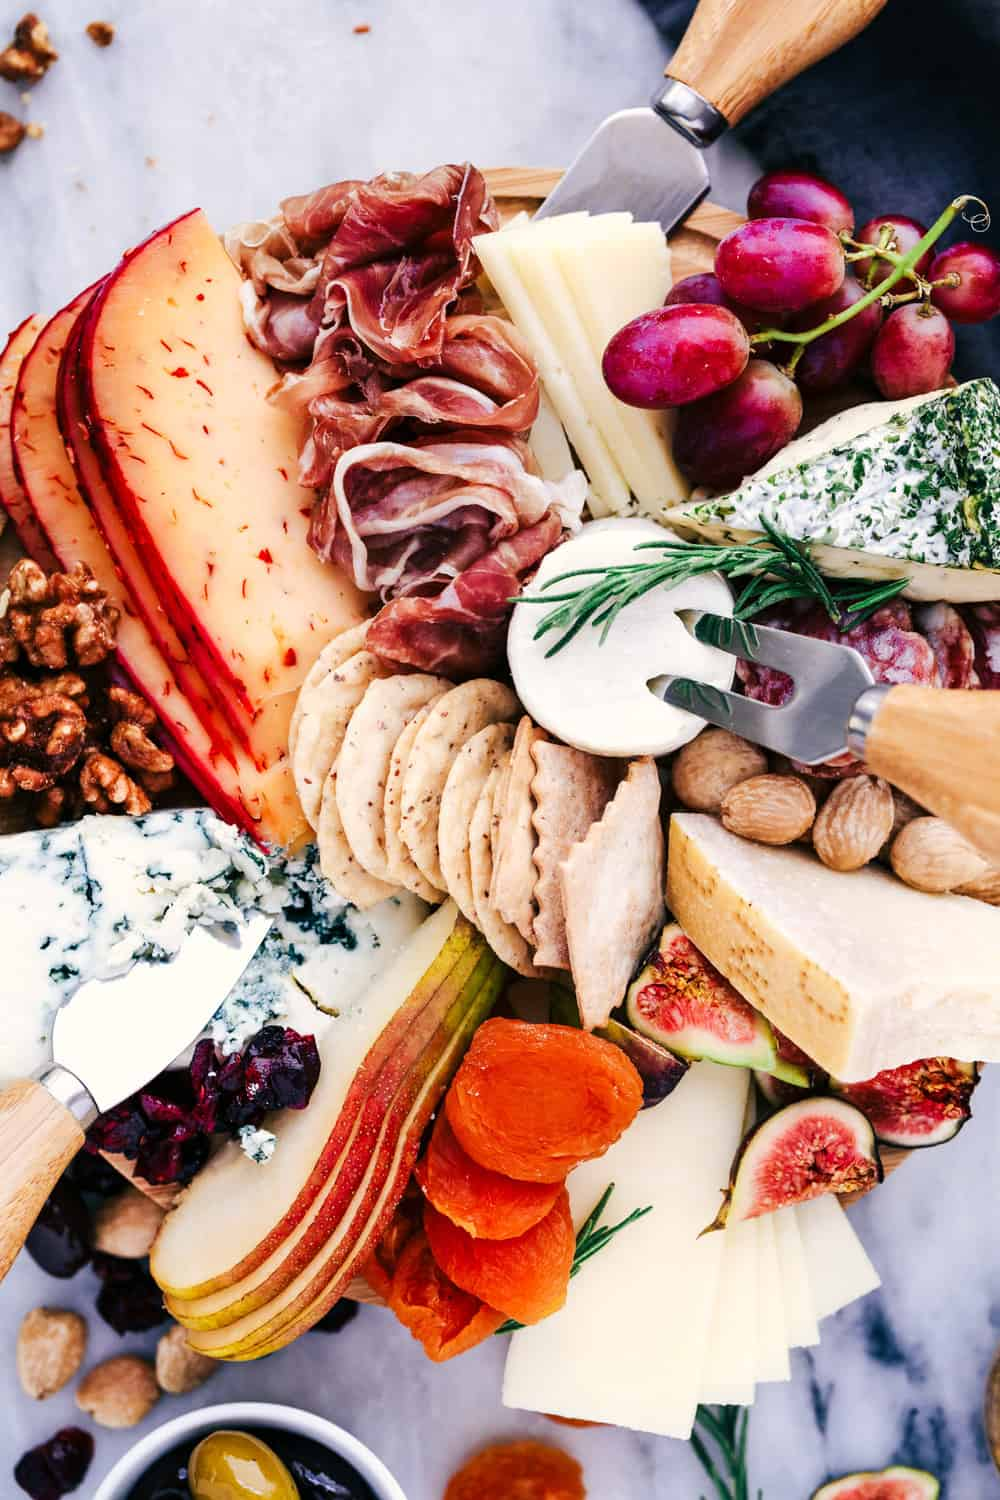 Cheese Board filled with meats, cheeses, nuts, and fruit.